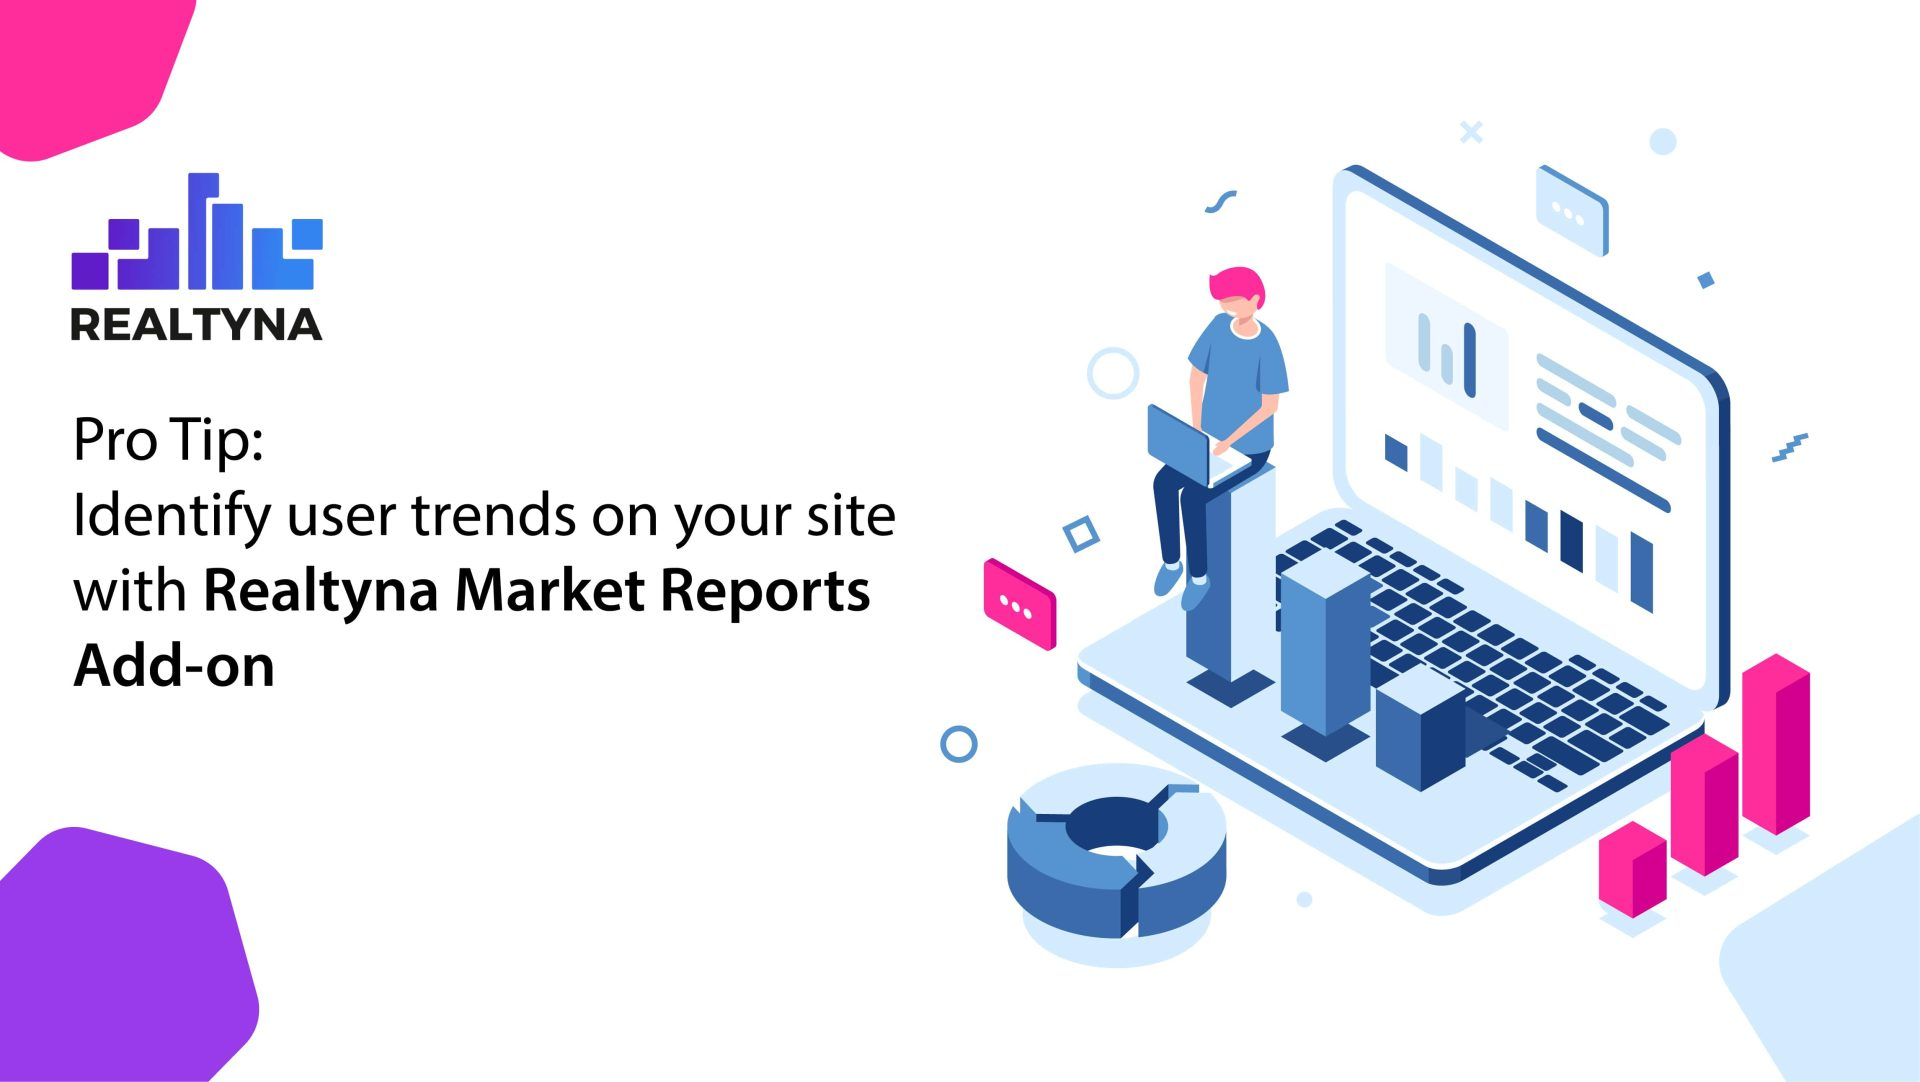 realtyna market reports